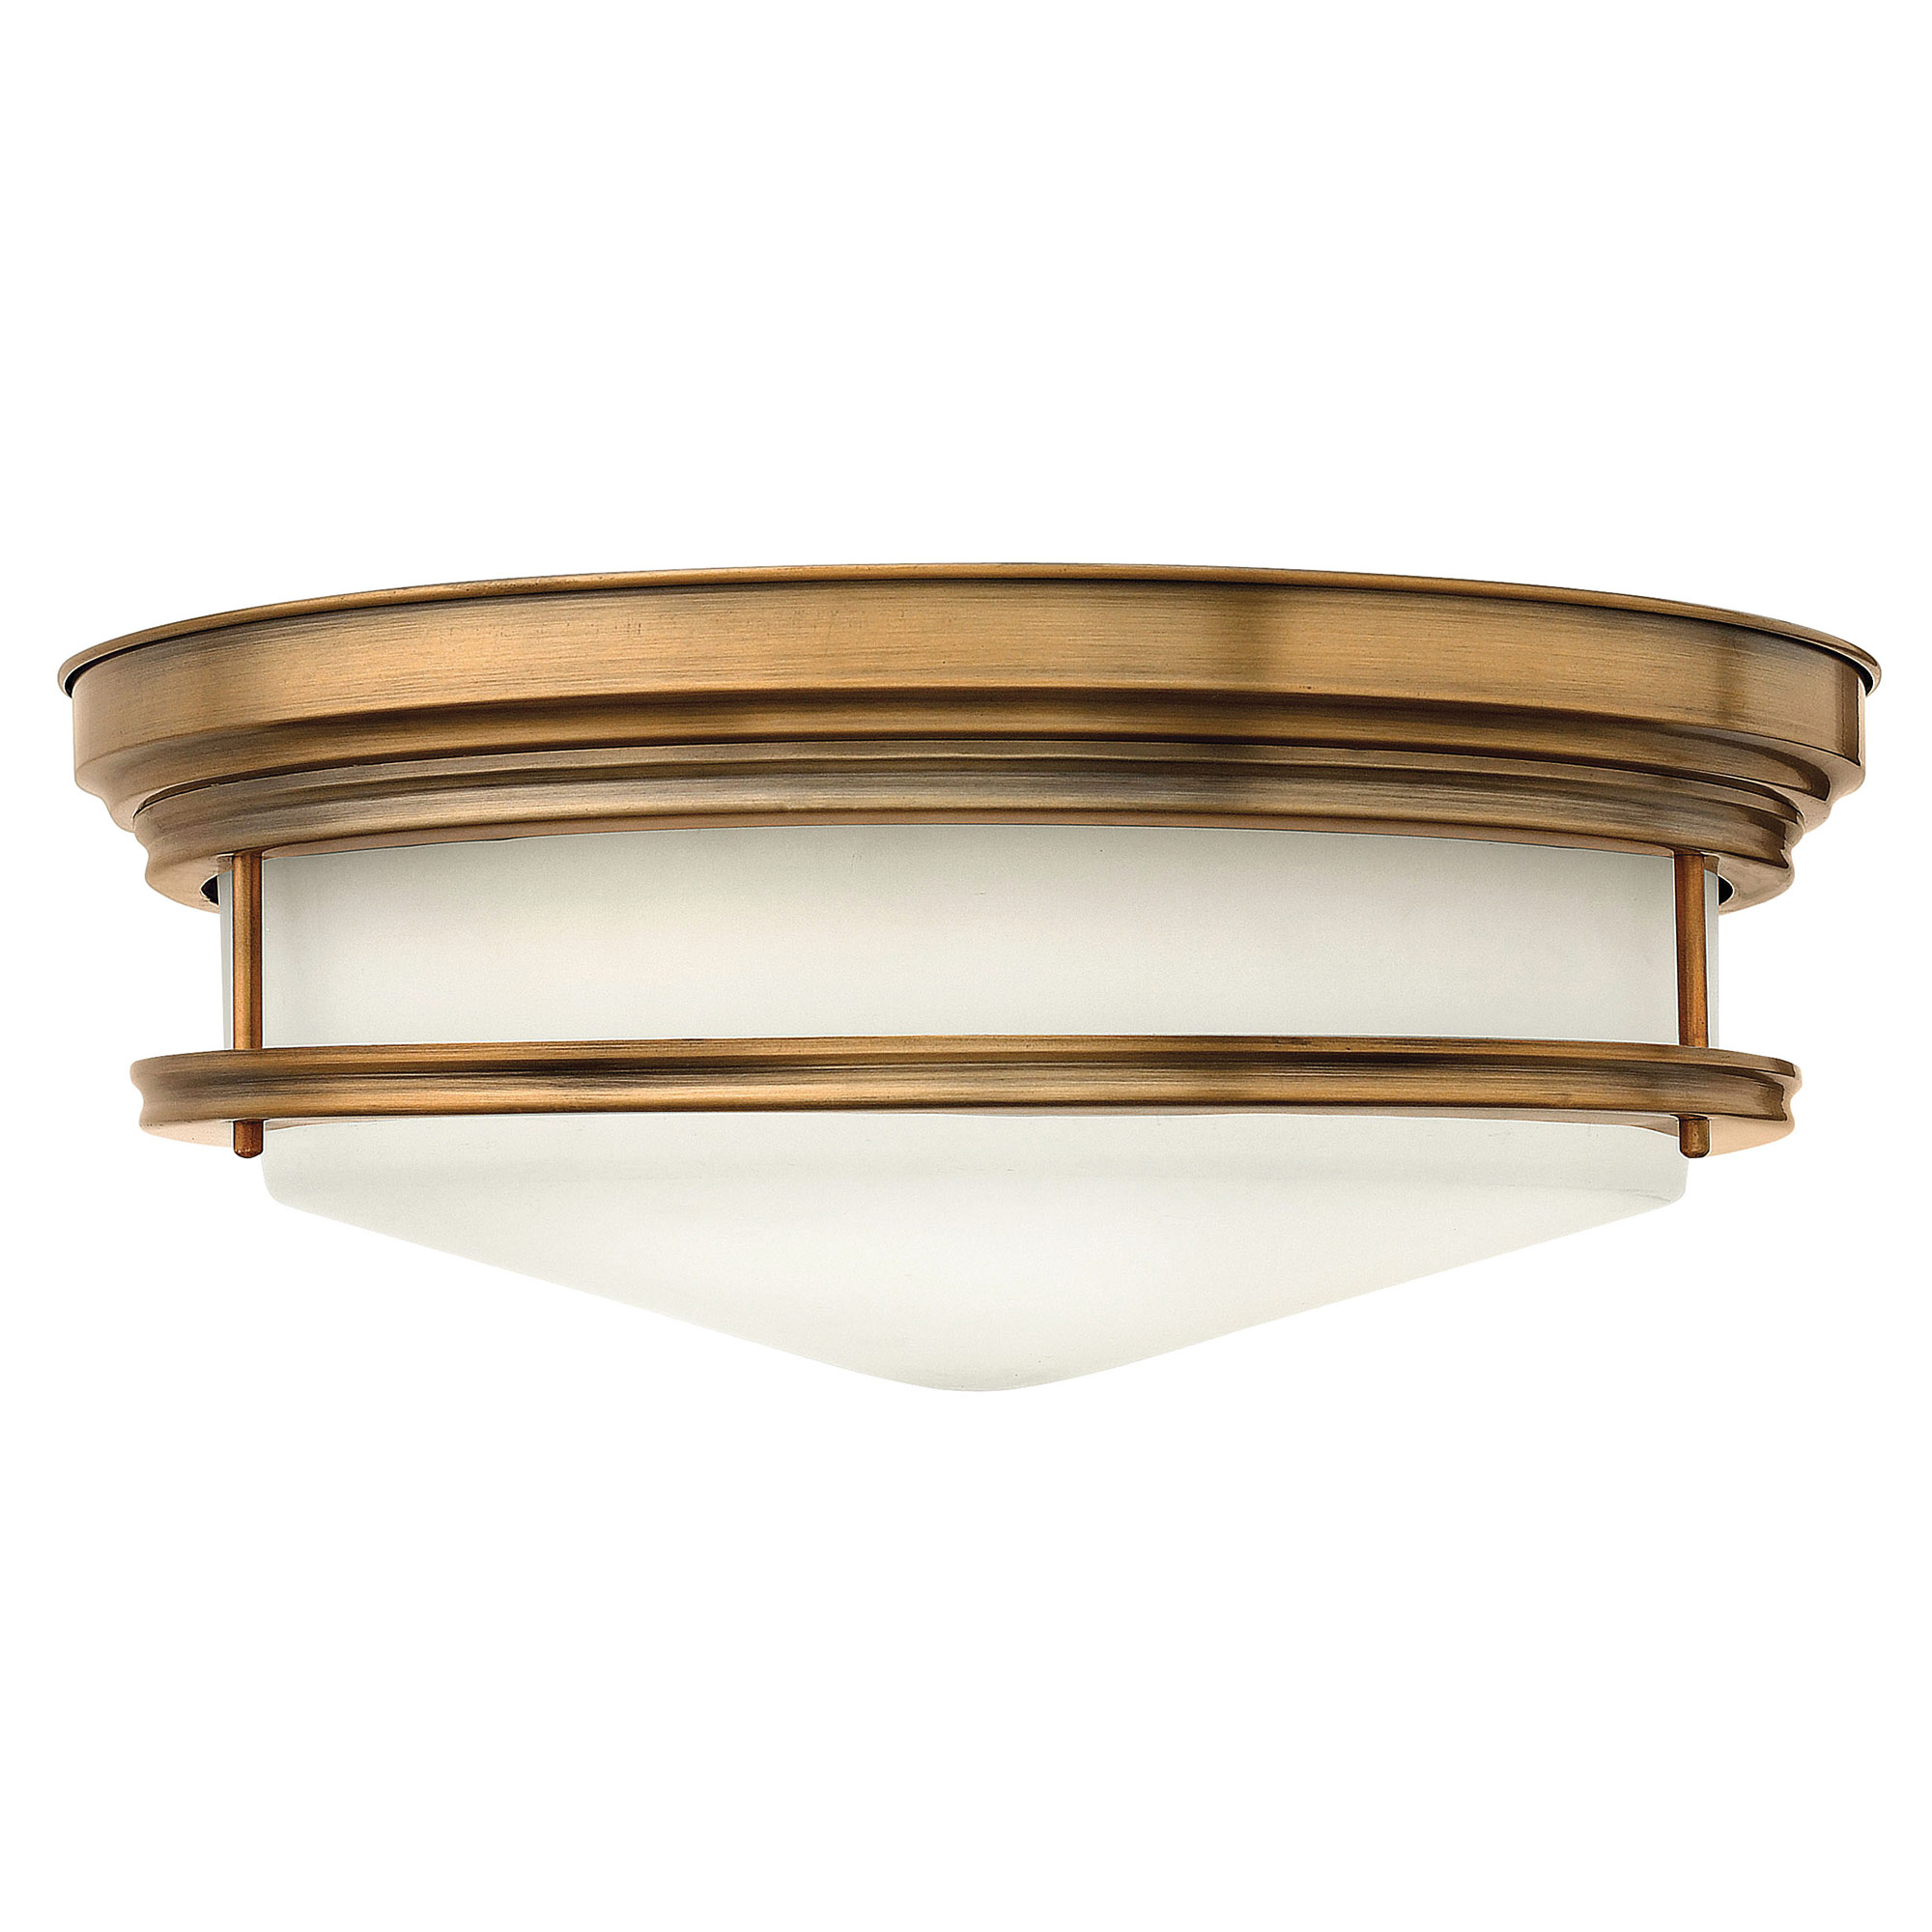 Brushed Bronze Light Fixtures Brushed Bronze Lighting Fixtures For Bathroom Useful Reviews Of